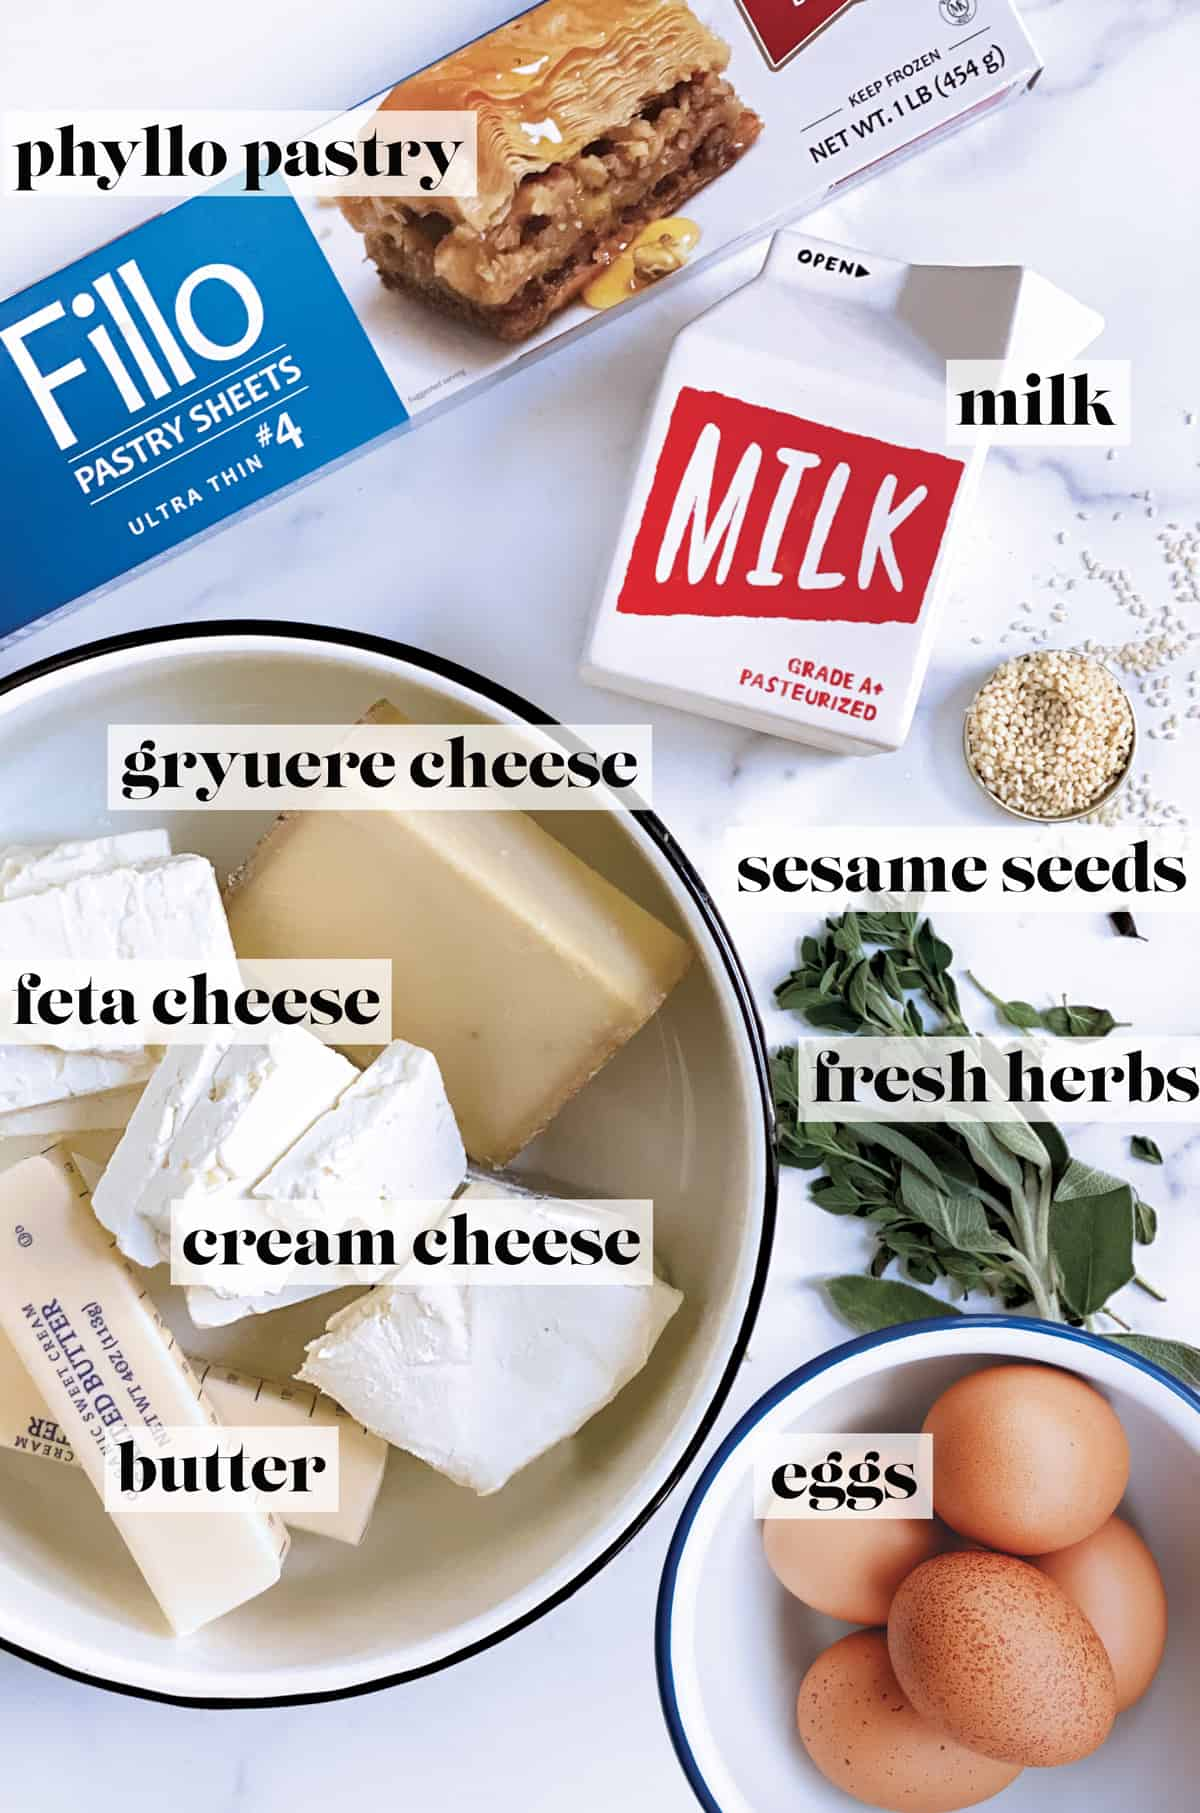 A packet of phyllo pastry, fresh herbs, a bowl with eggs, sesame seeds, a bowl with feta, gruyere, cream cheese, butter, and a carton of milk.